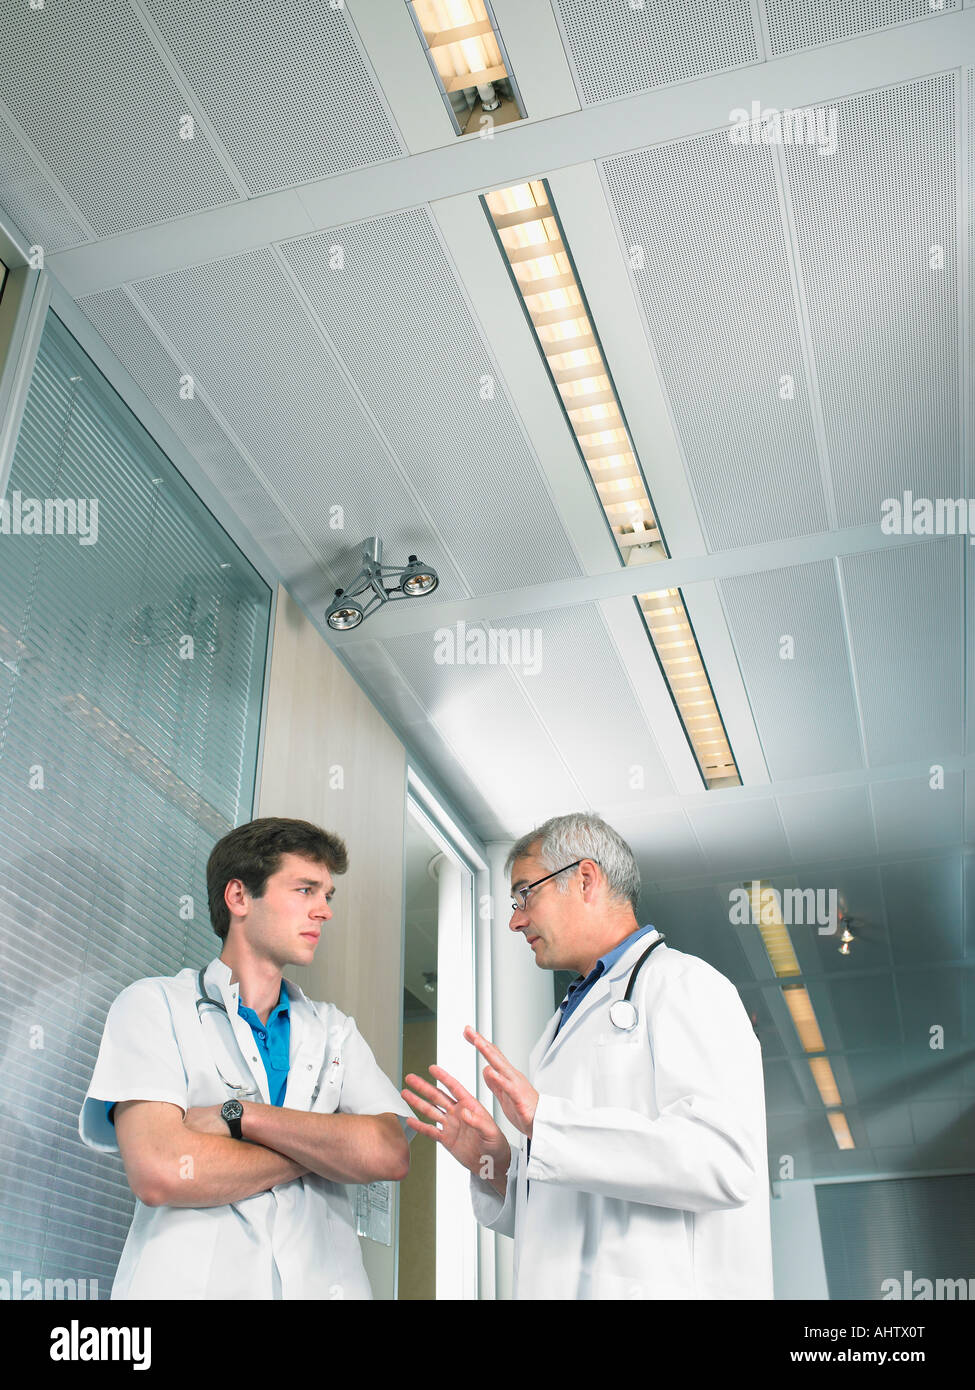 Mature doctor and young doctor in discussion in a lobby of a hospital low angle. - Stock Image